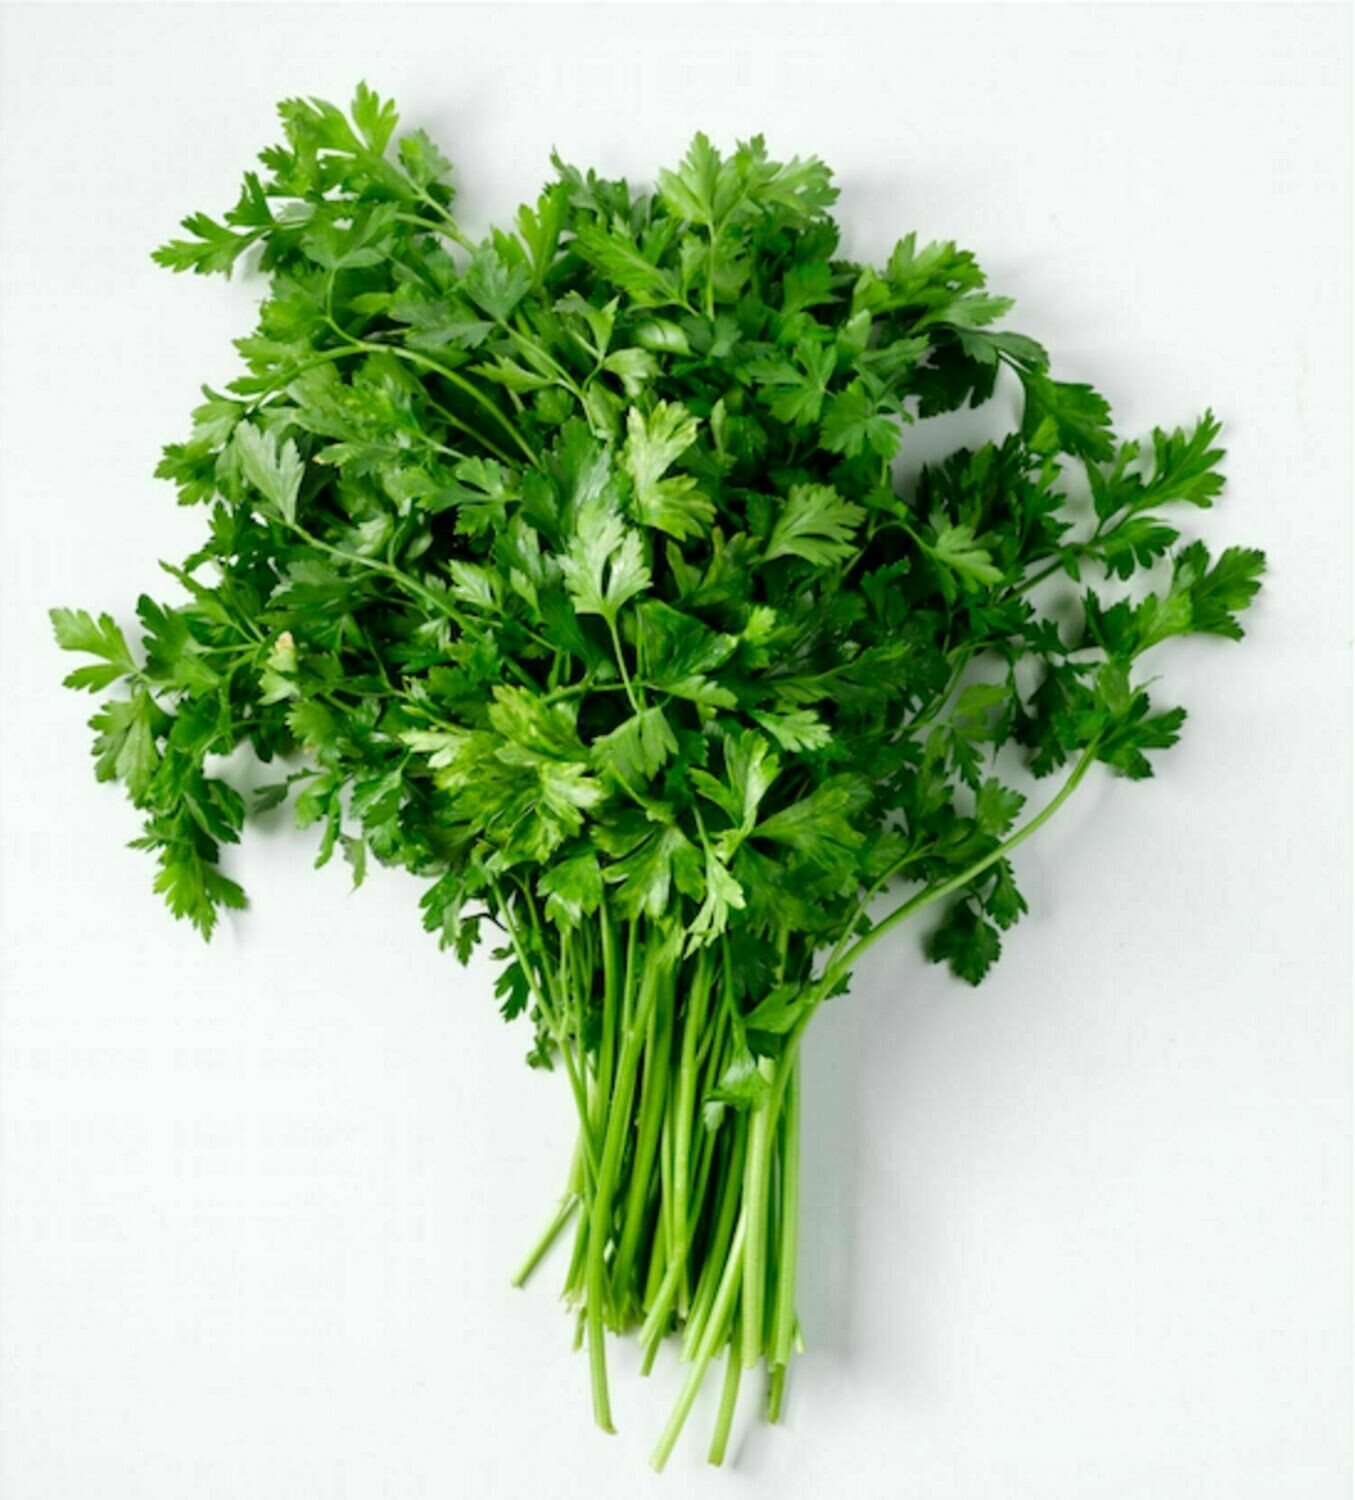 Parsley بقدونس (Bunch) - The Green Van Permaculture